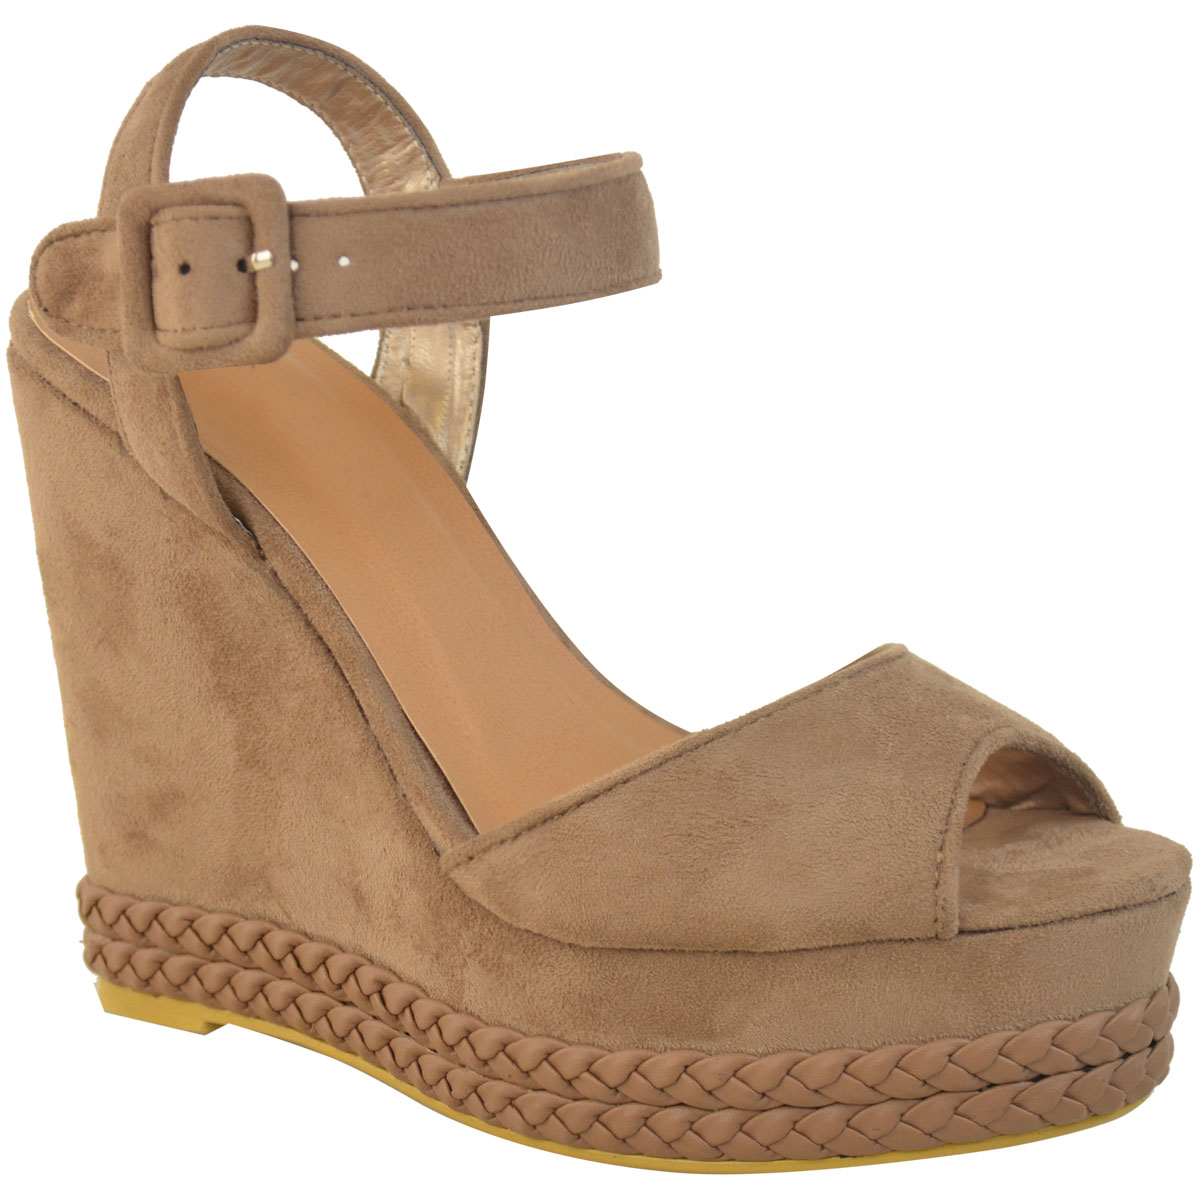 In comes the wedge and solves that problem for you, with shoes that give you height and sexiness but maintain the playfulness of a sandal. Beyond sexy and leg-lengthening, wedge shoes come with cork, wood, leather and suede wedges, and in both open and closed looks.